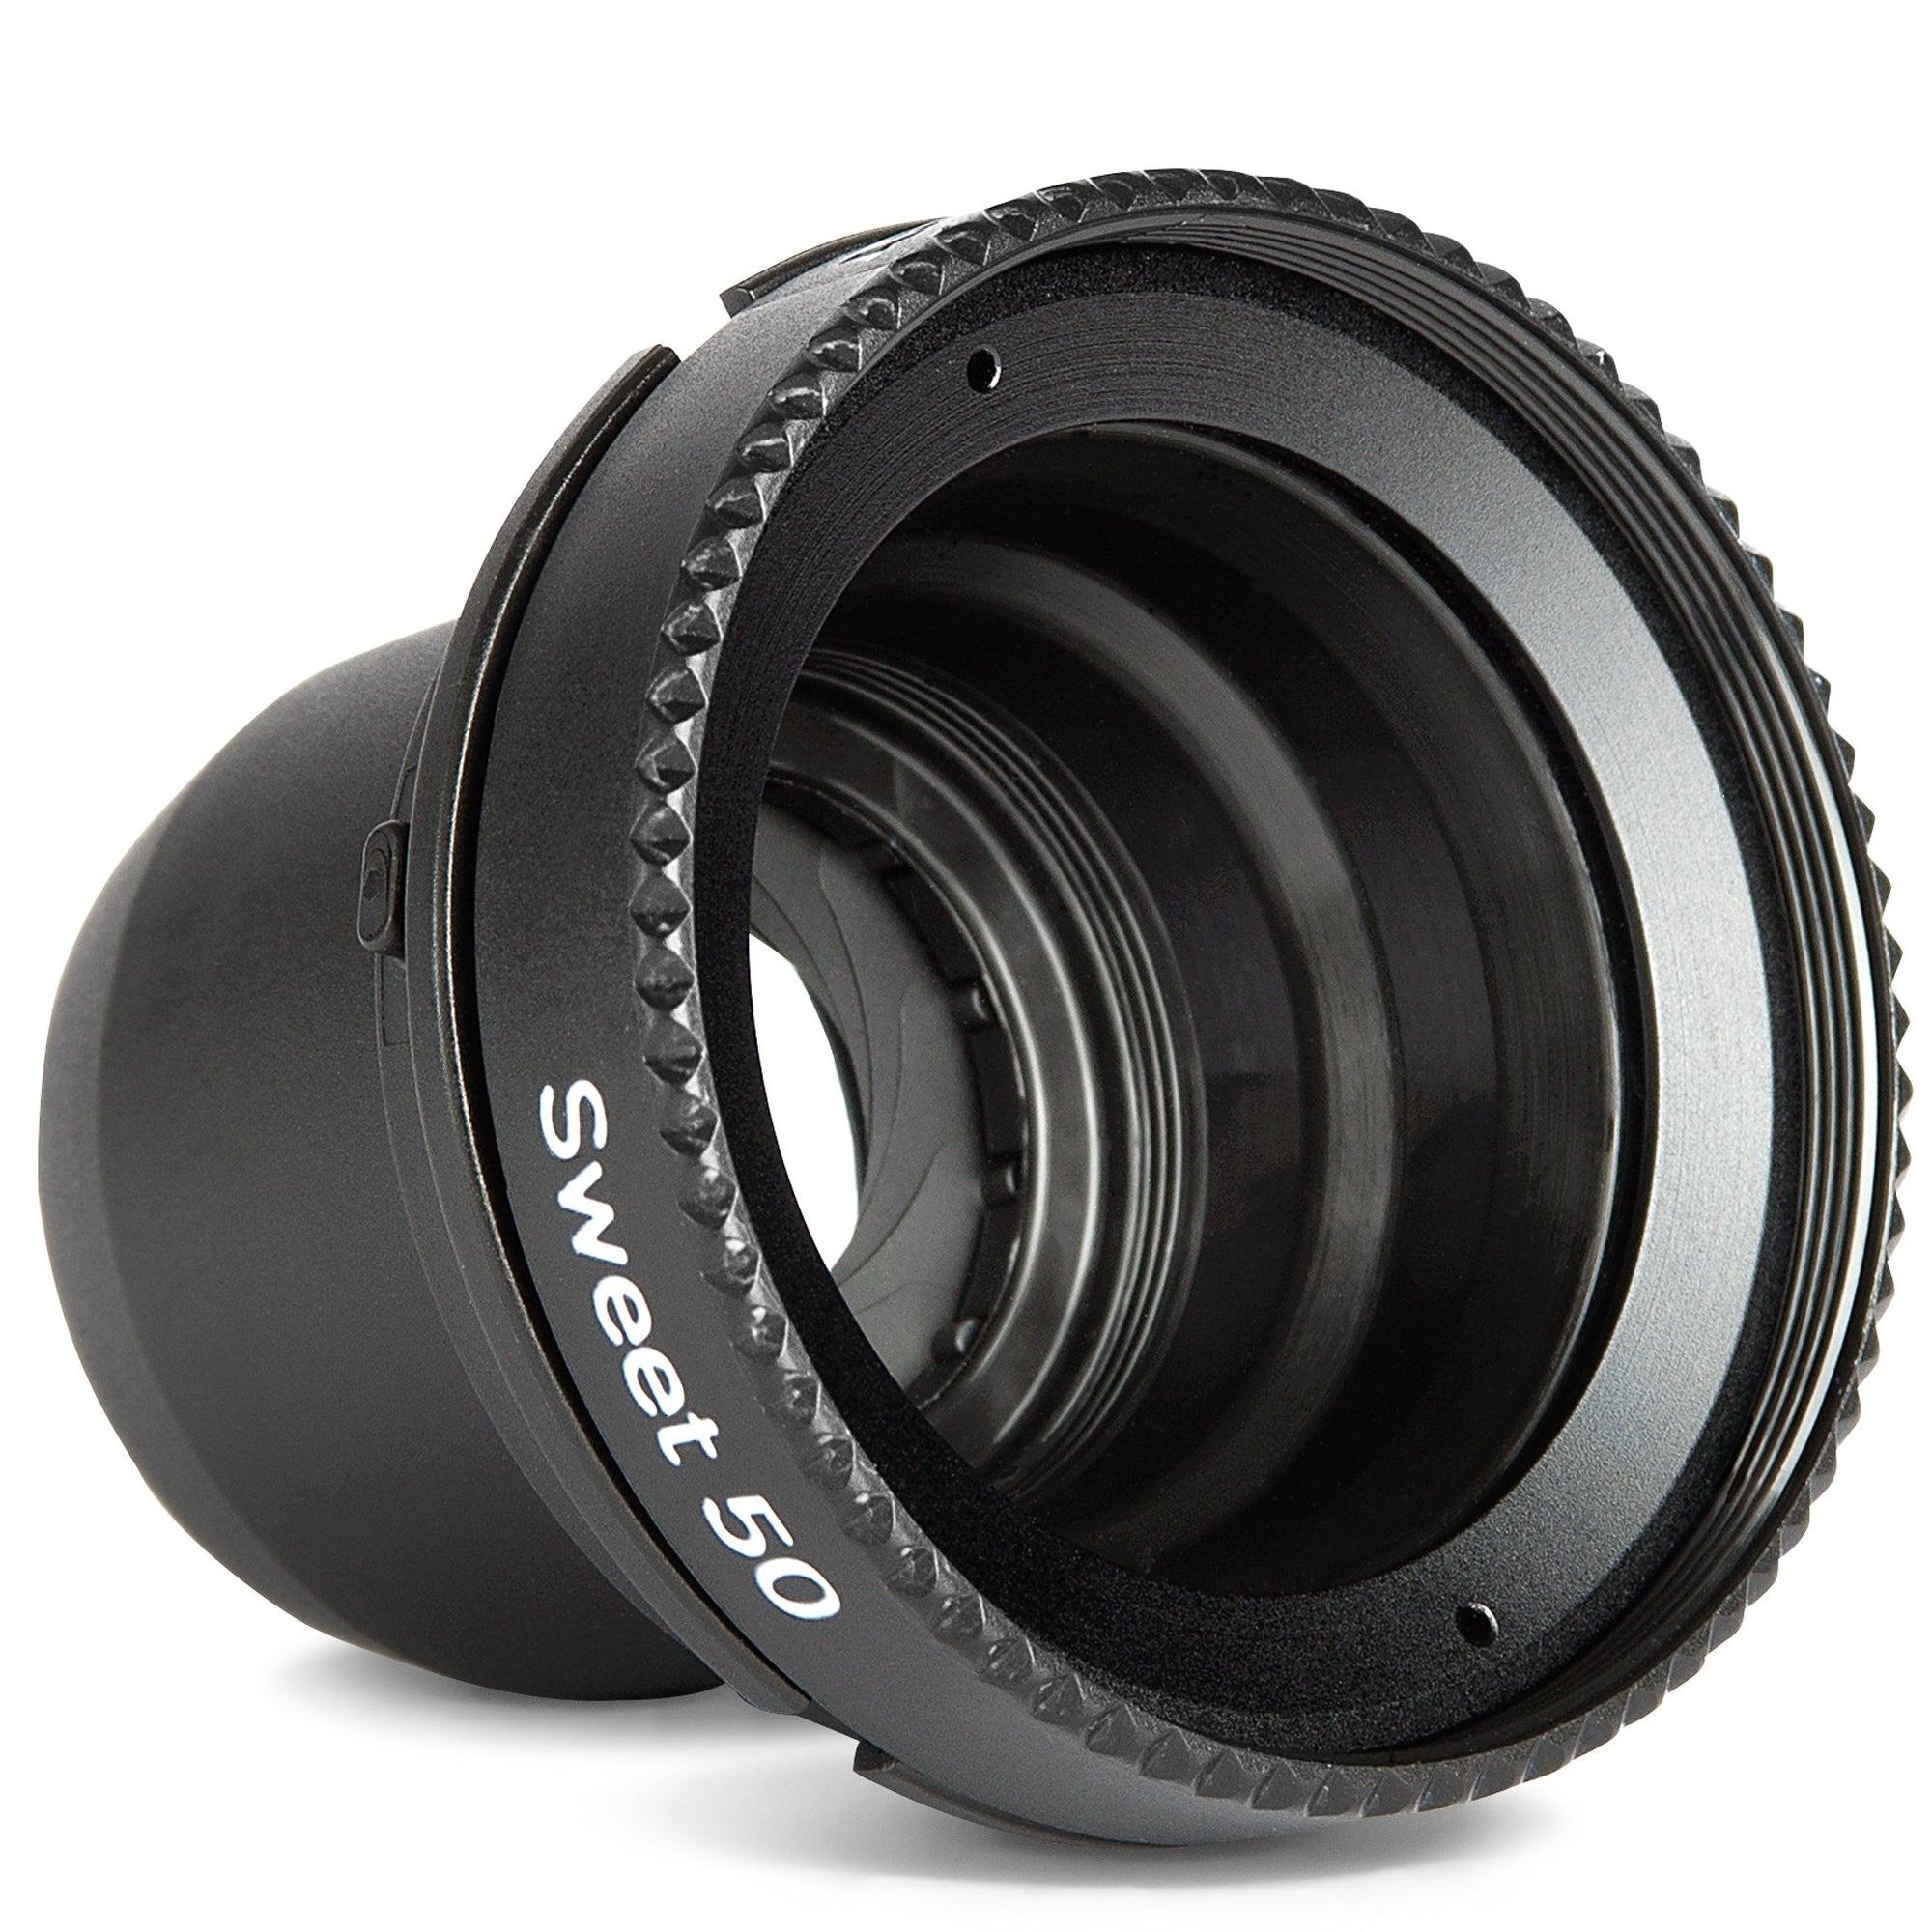 Sweet 50 Optic - Lensbaby | Creative Effect Camera Lenses